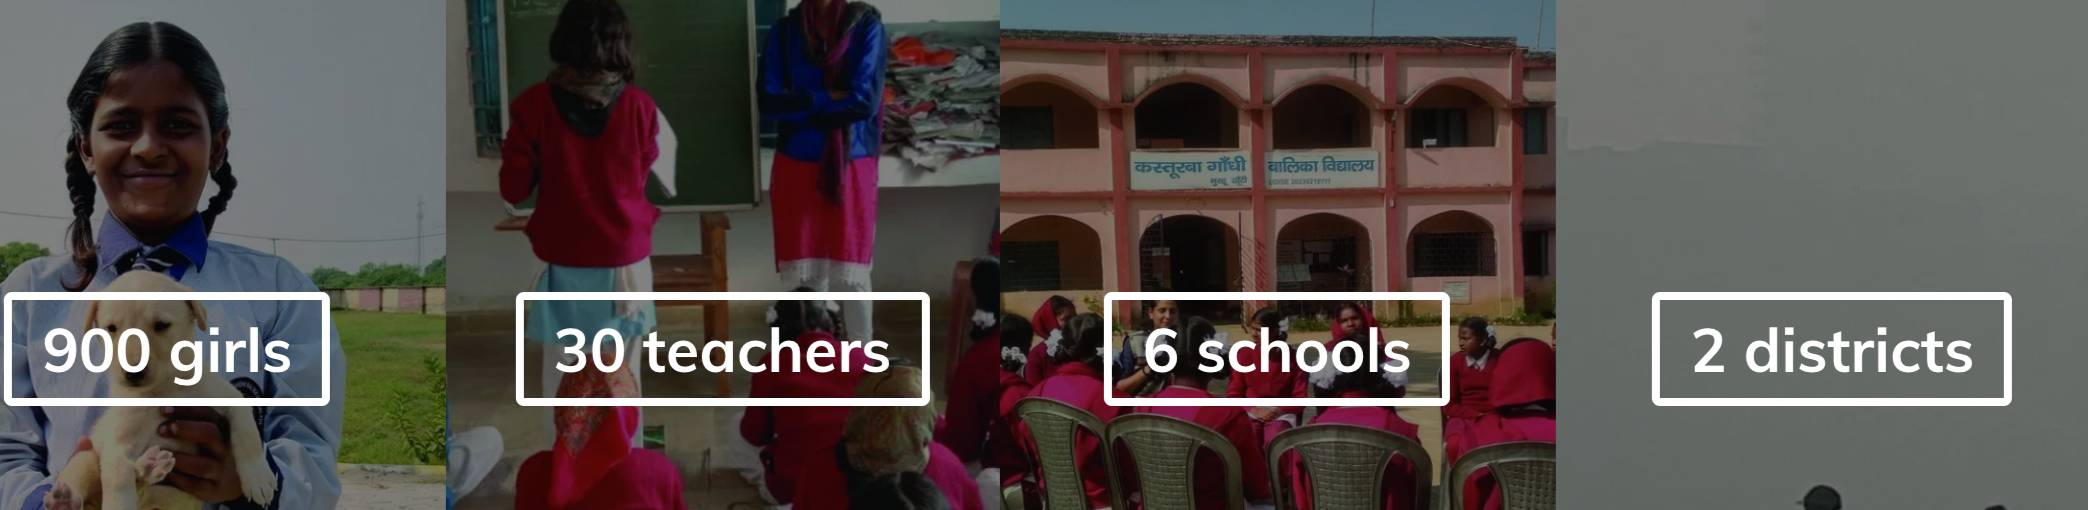 CoVid-19 Education Resilience Fund for 900 adolescent Girls from rural Haryana